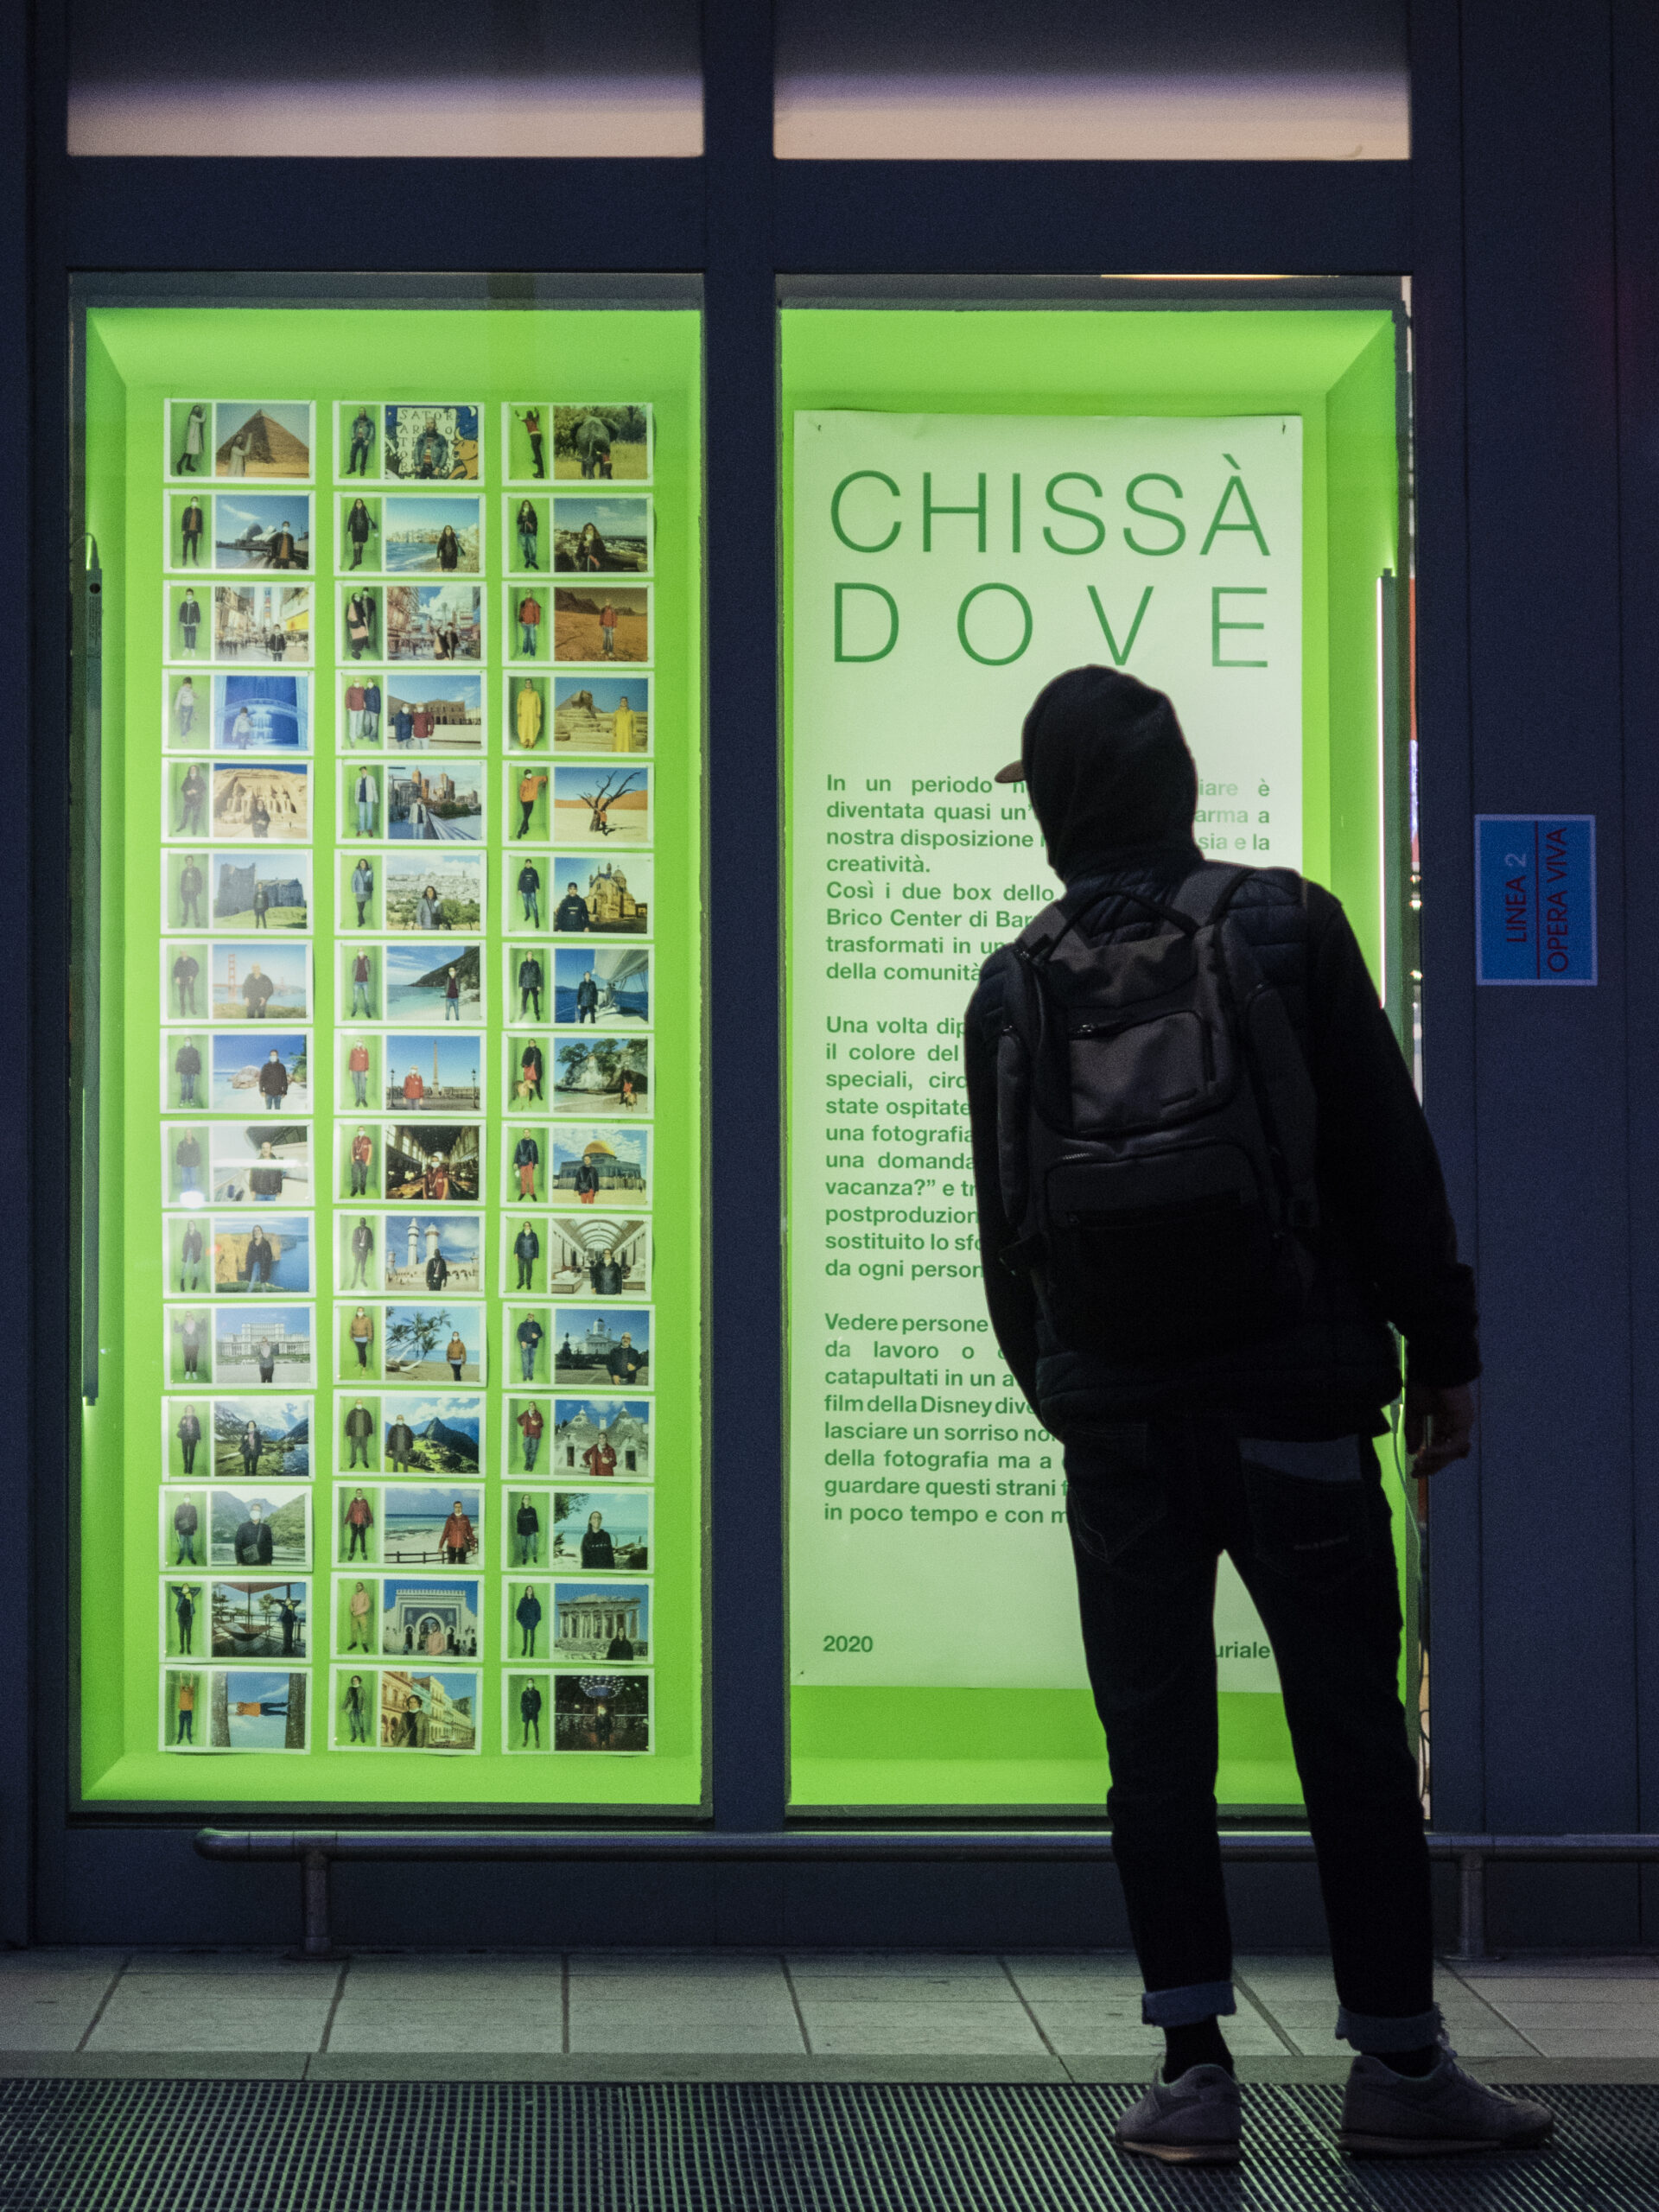 Chissà dove (2020), site specific, installation and performance, printed digital artworks on paper, wood, green screen painting, neon - Marco Curiale - courtesy of the artist